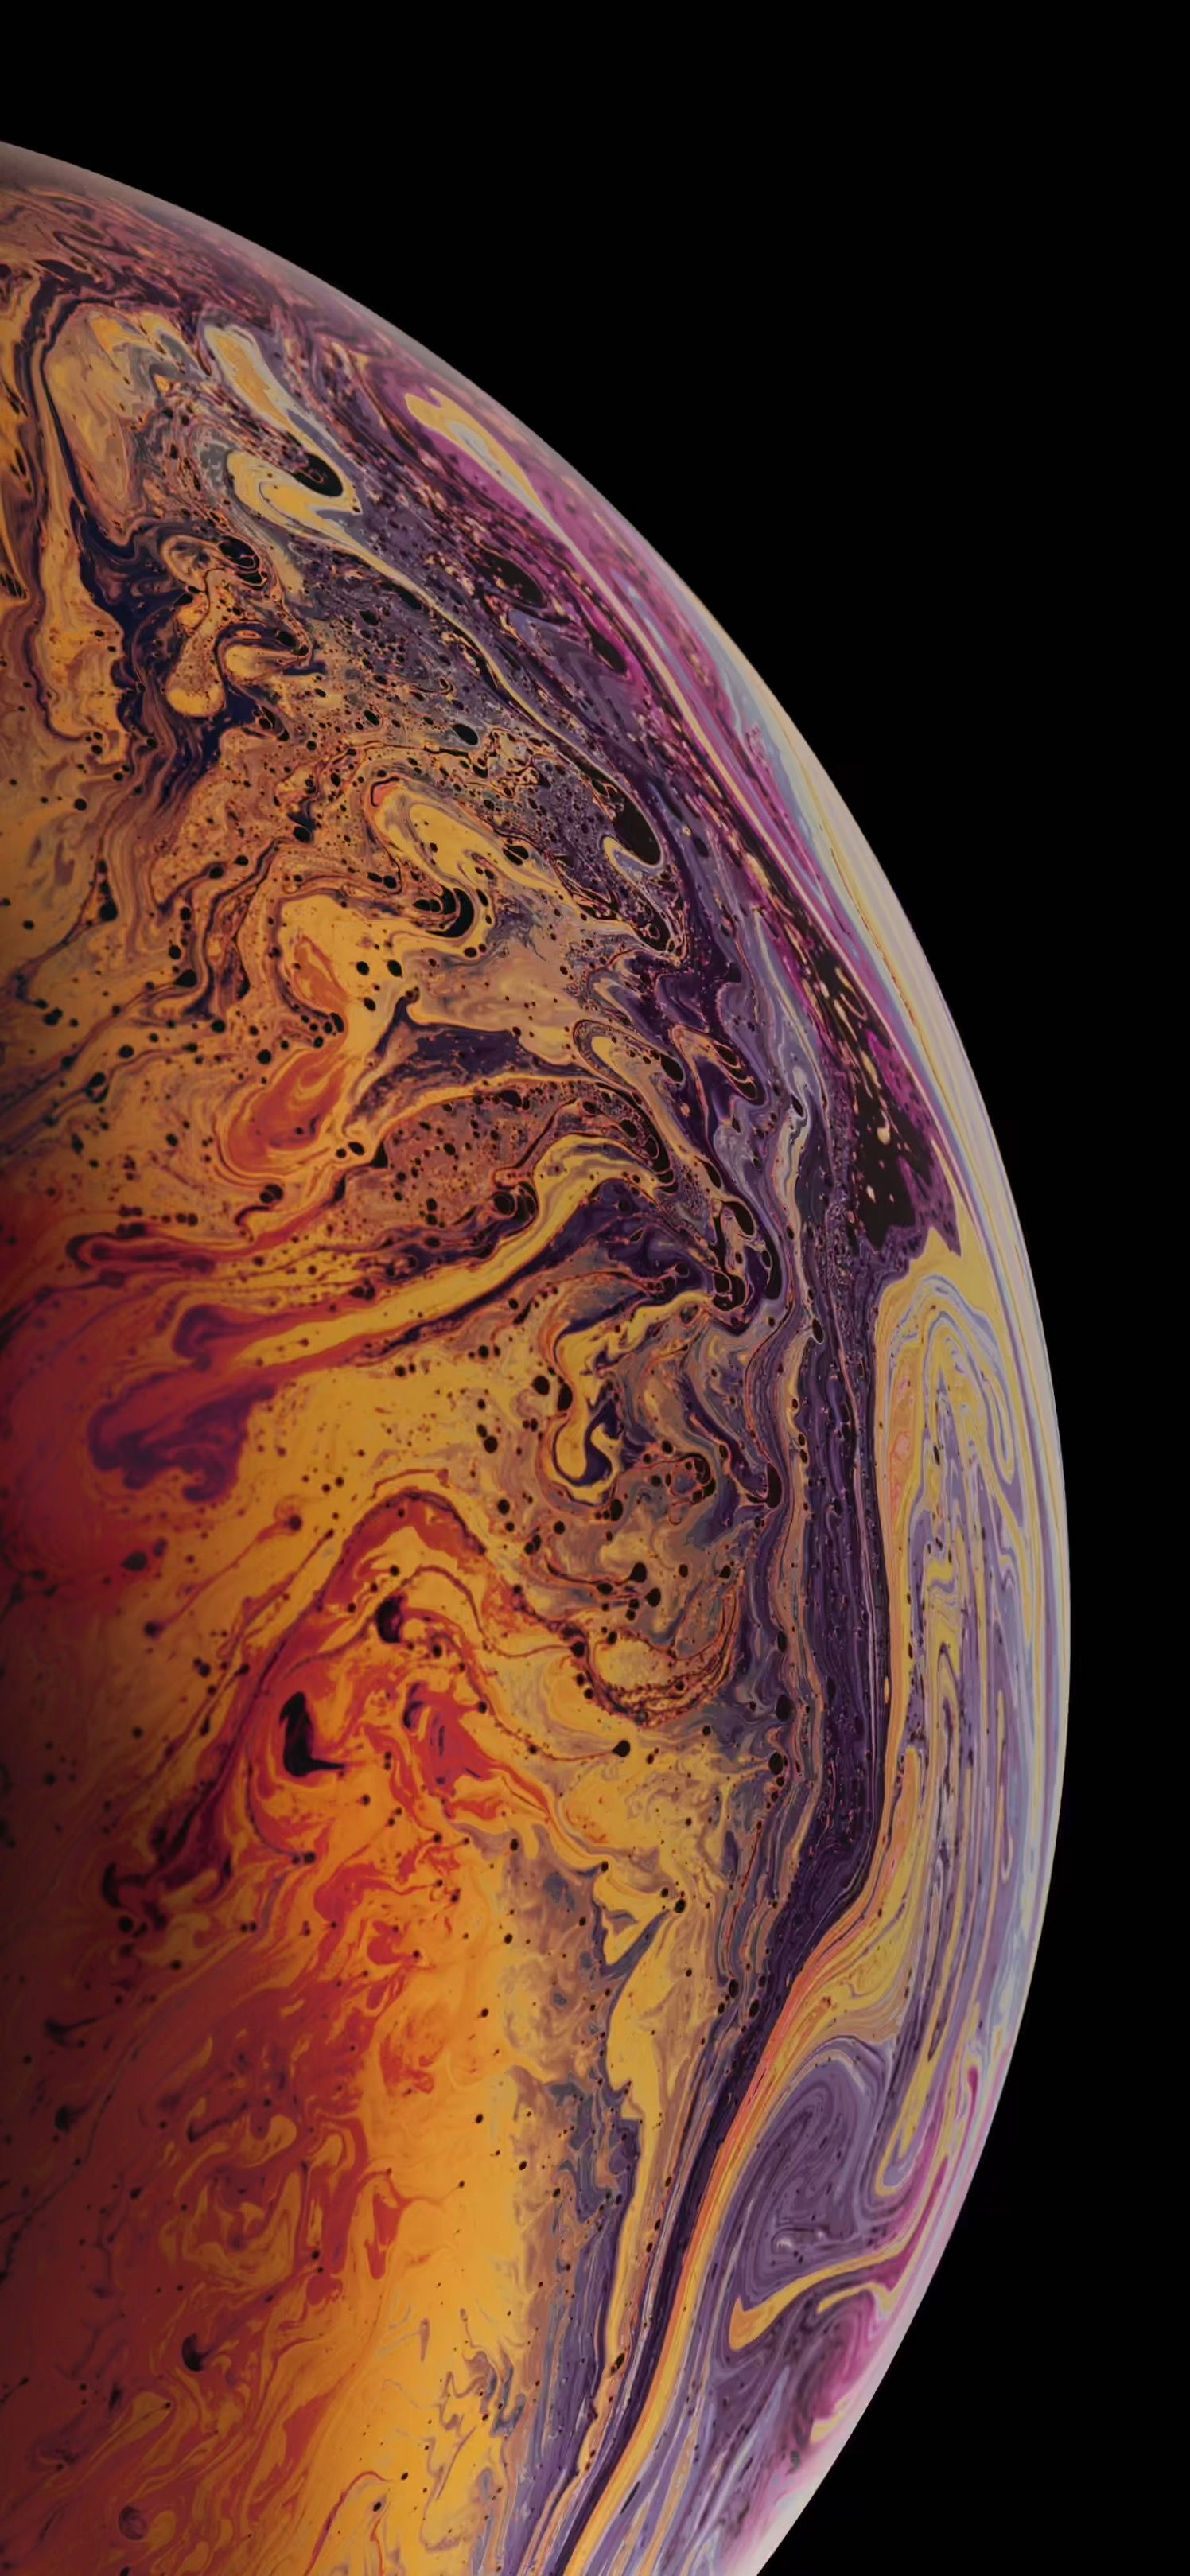 Original Iphone X Xs Wallpaper Ios Wallpapers Hd